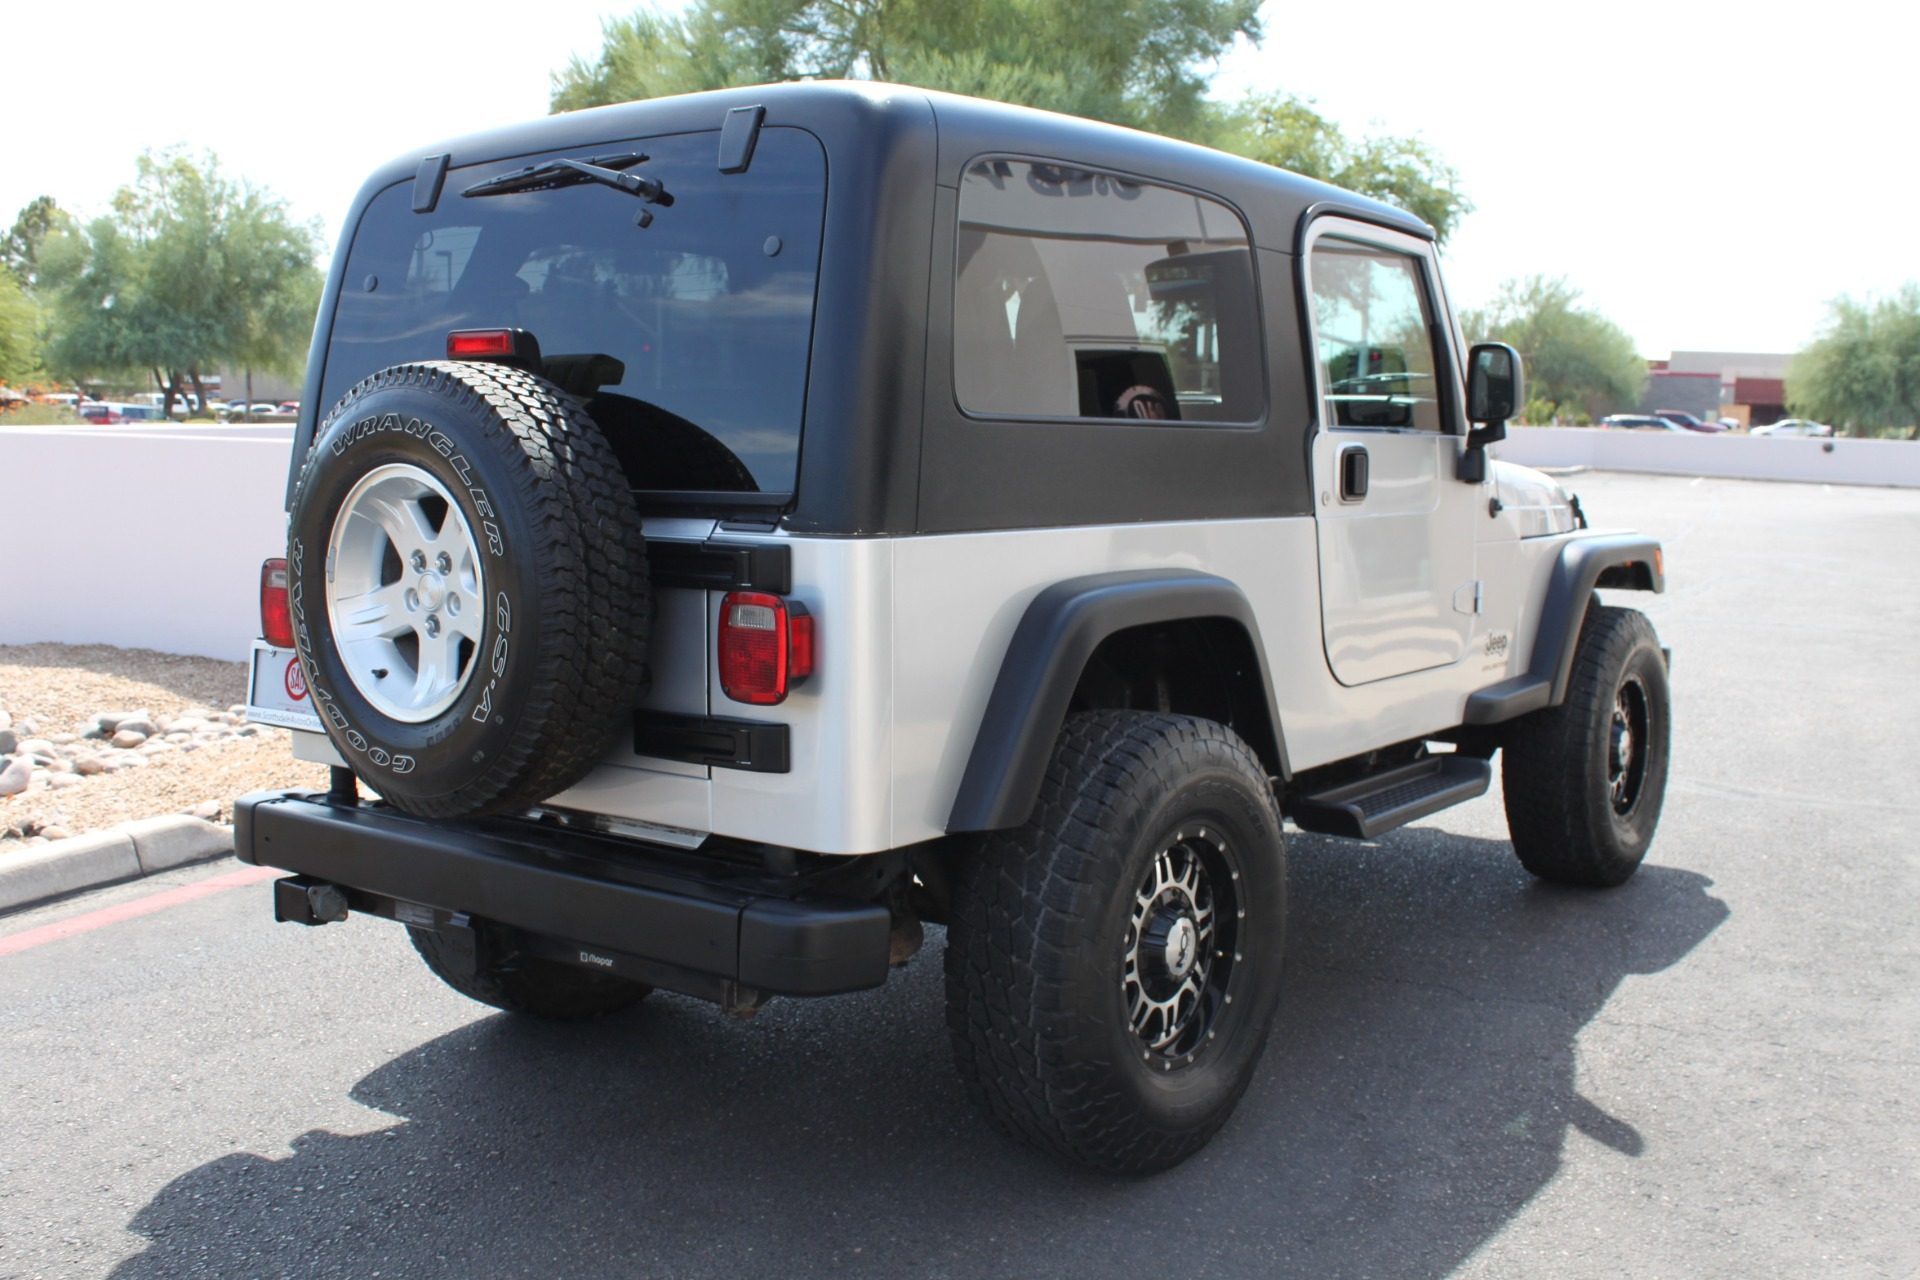 Used-2006-Jeep-Wrangler-Unlimited-LWB-Classic